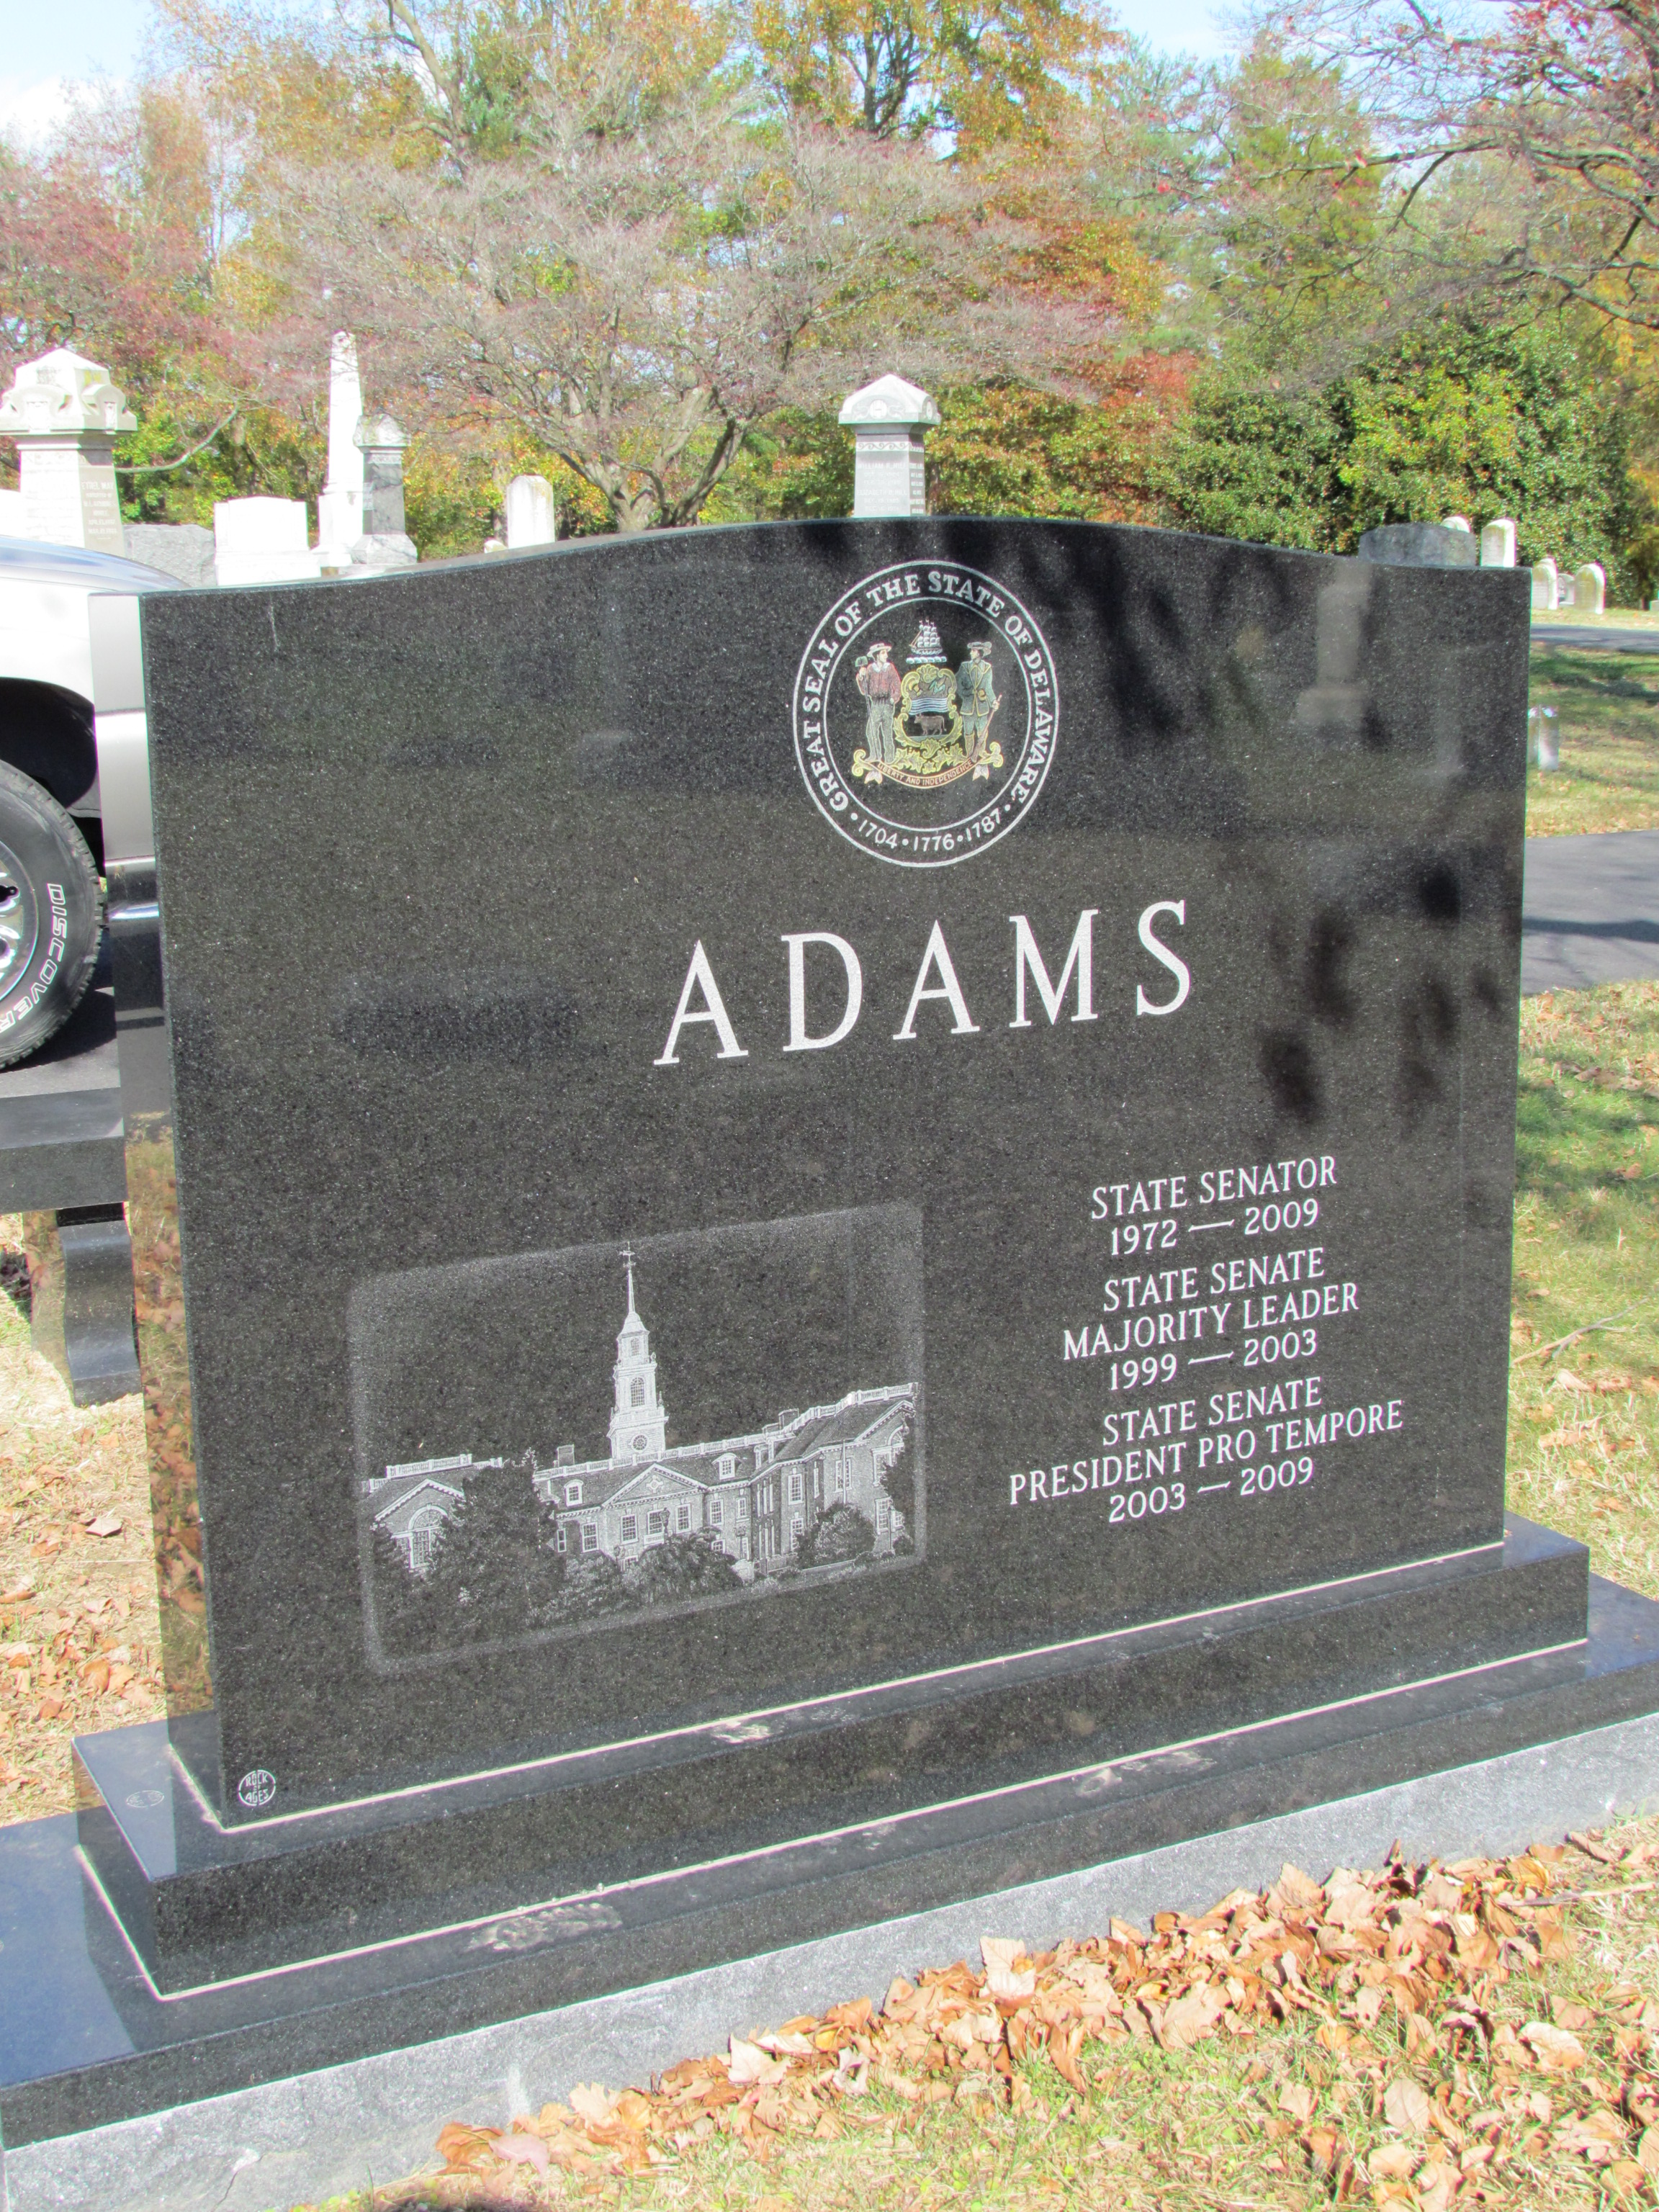 Thurman Adams, Jr